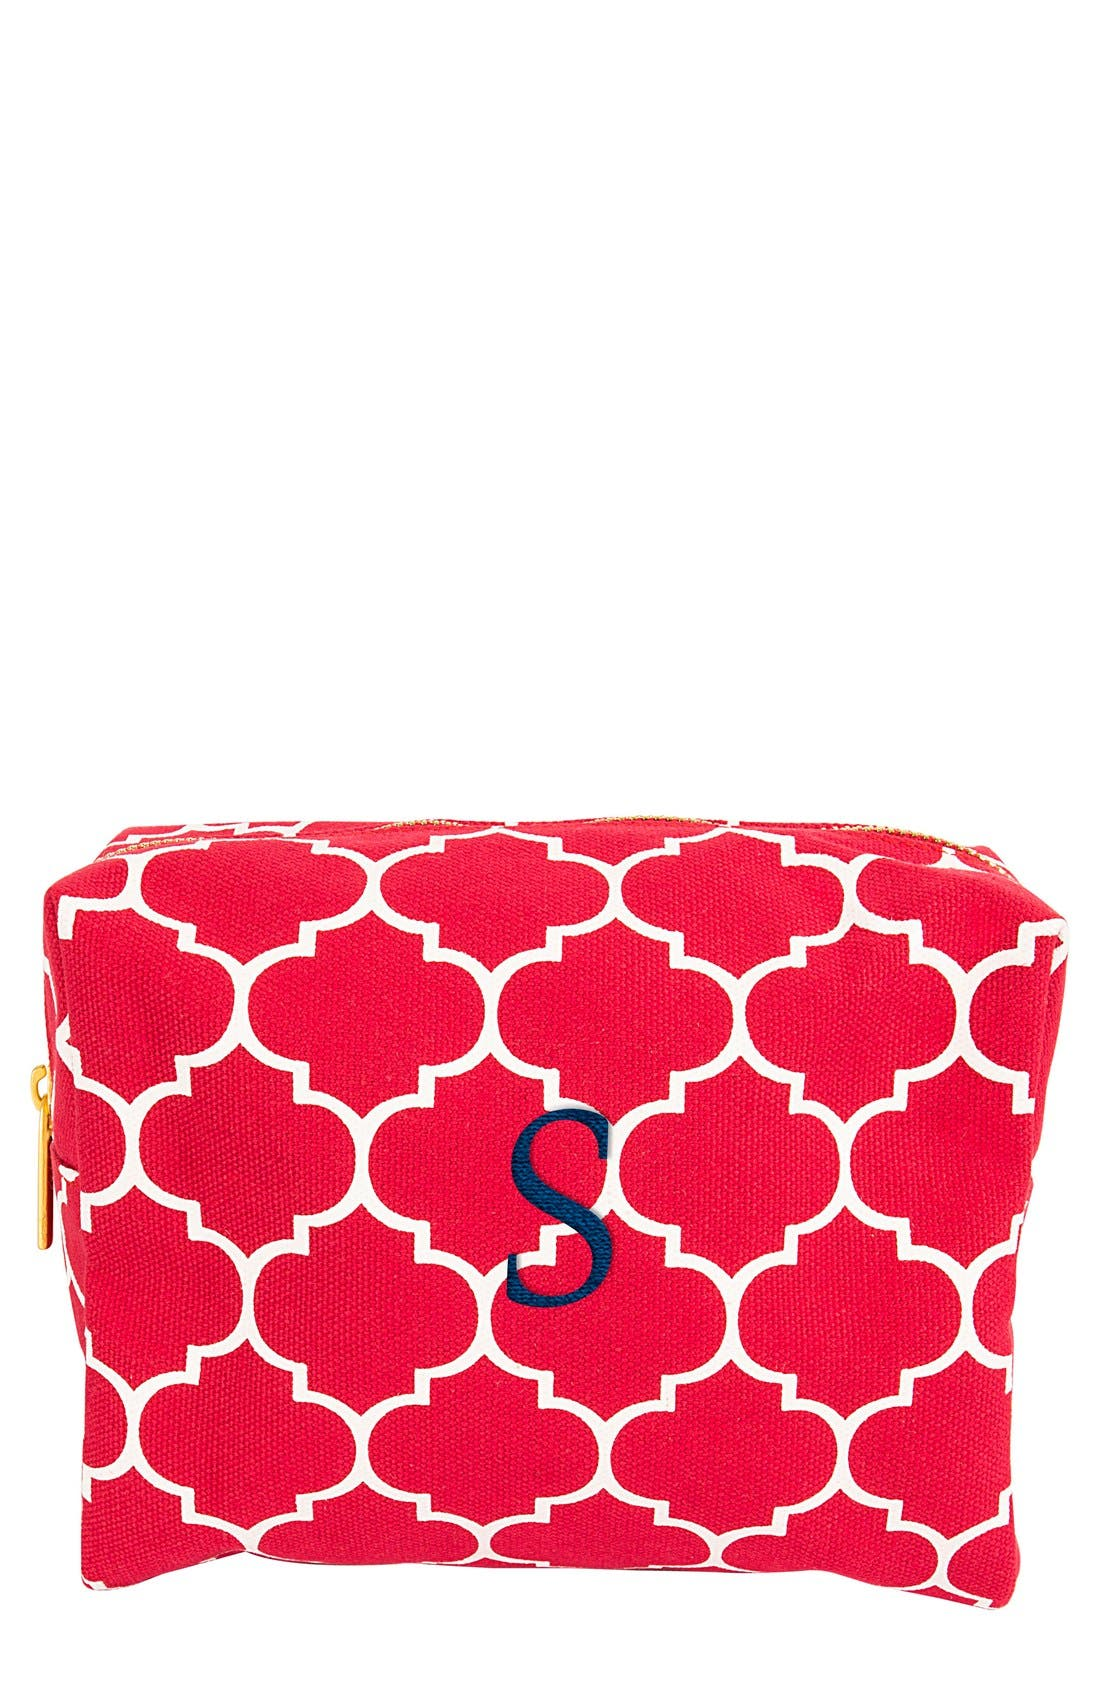 Alternate Image 1 Selected - Cathy's Concepts Monogram Cosmetics Case